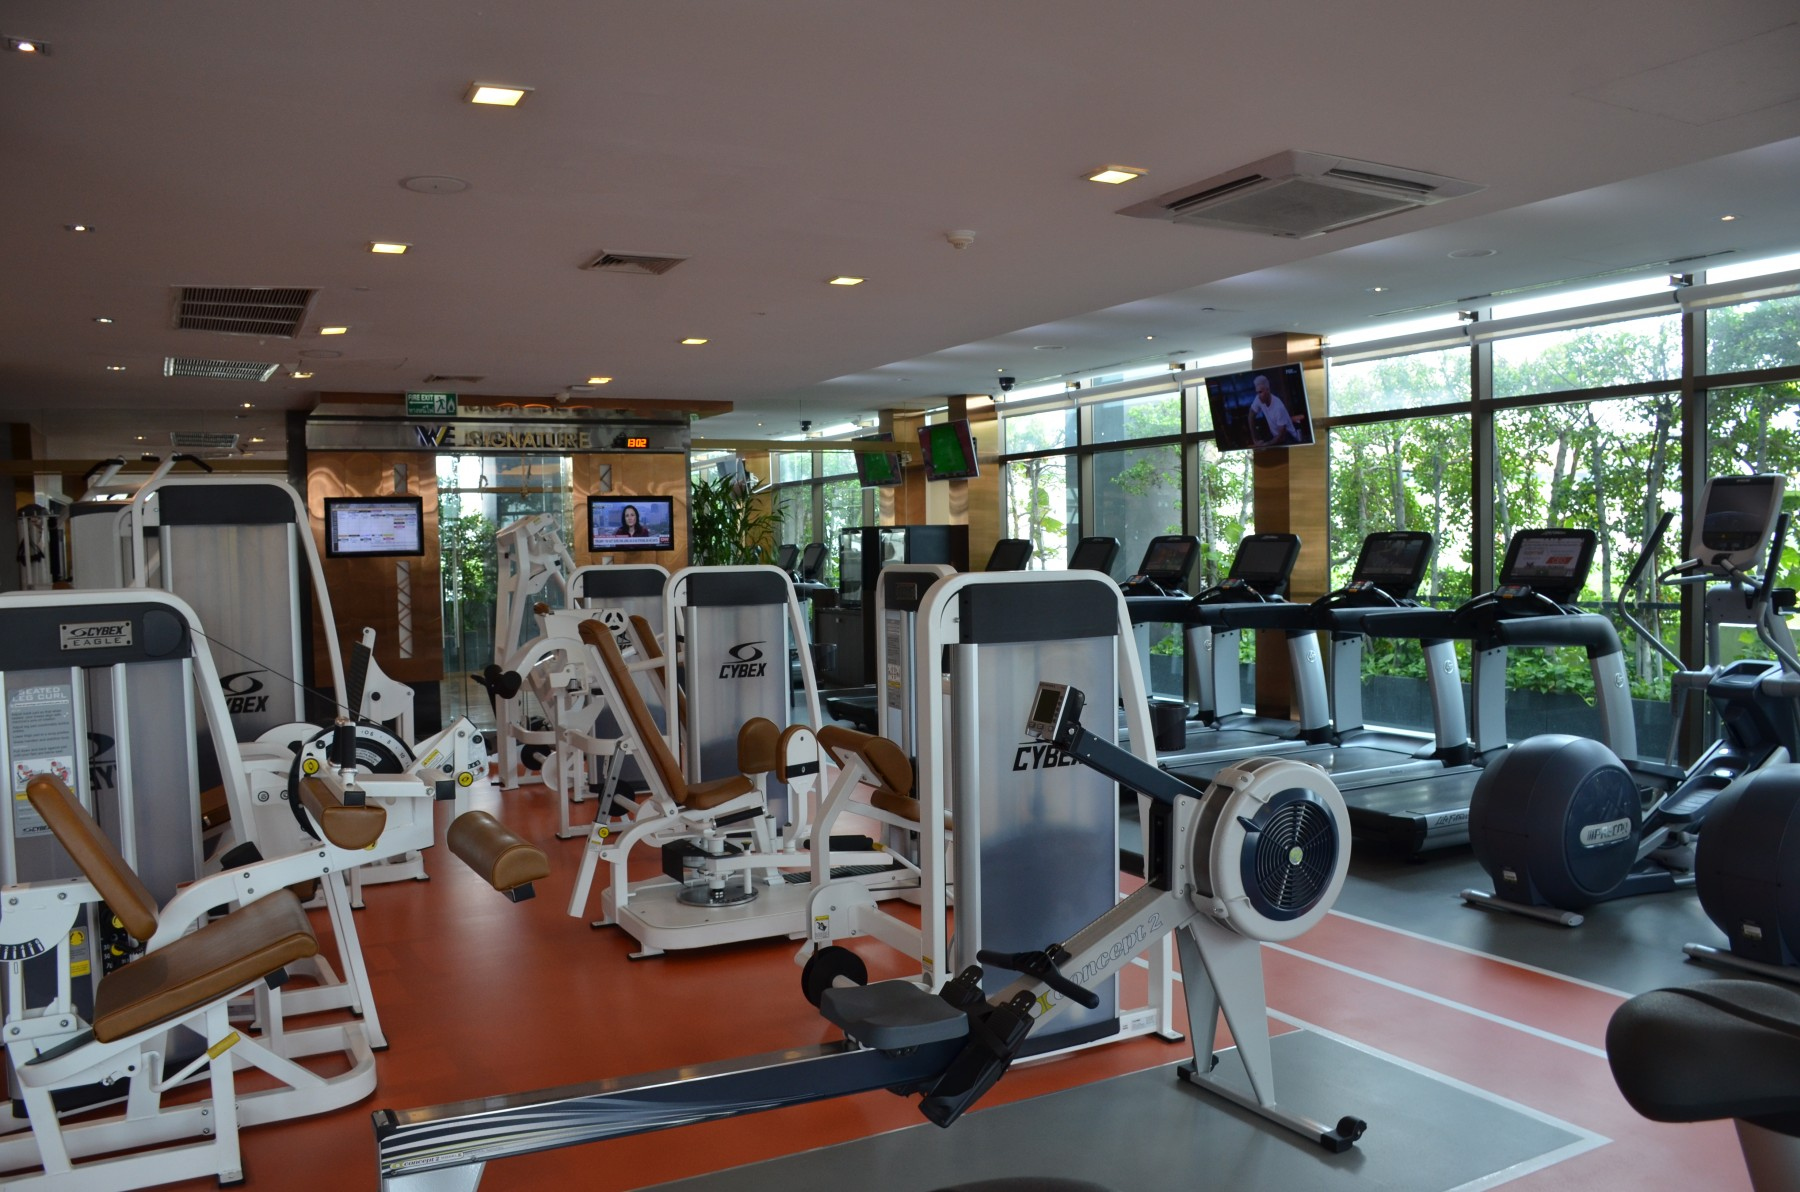 we-signature-fitness-club